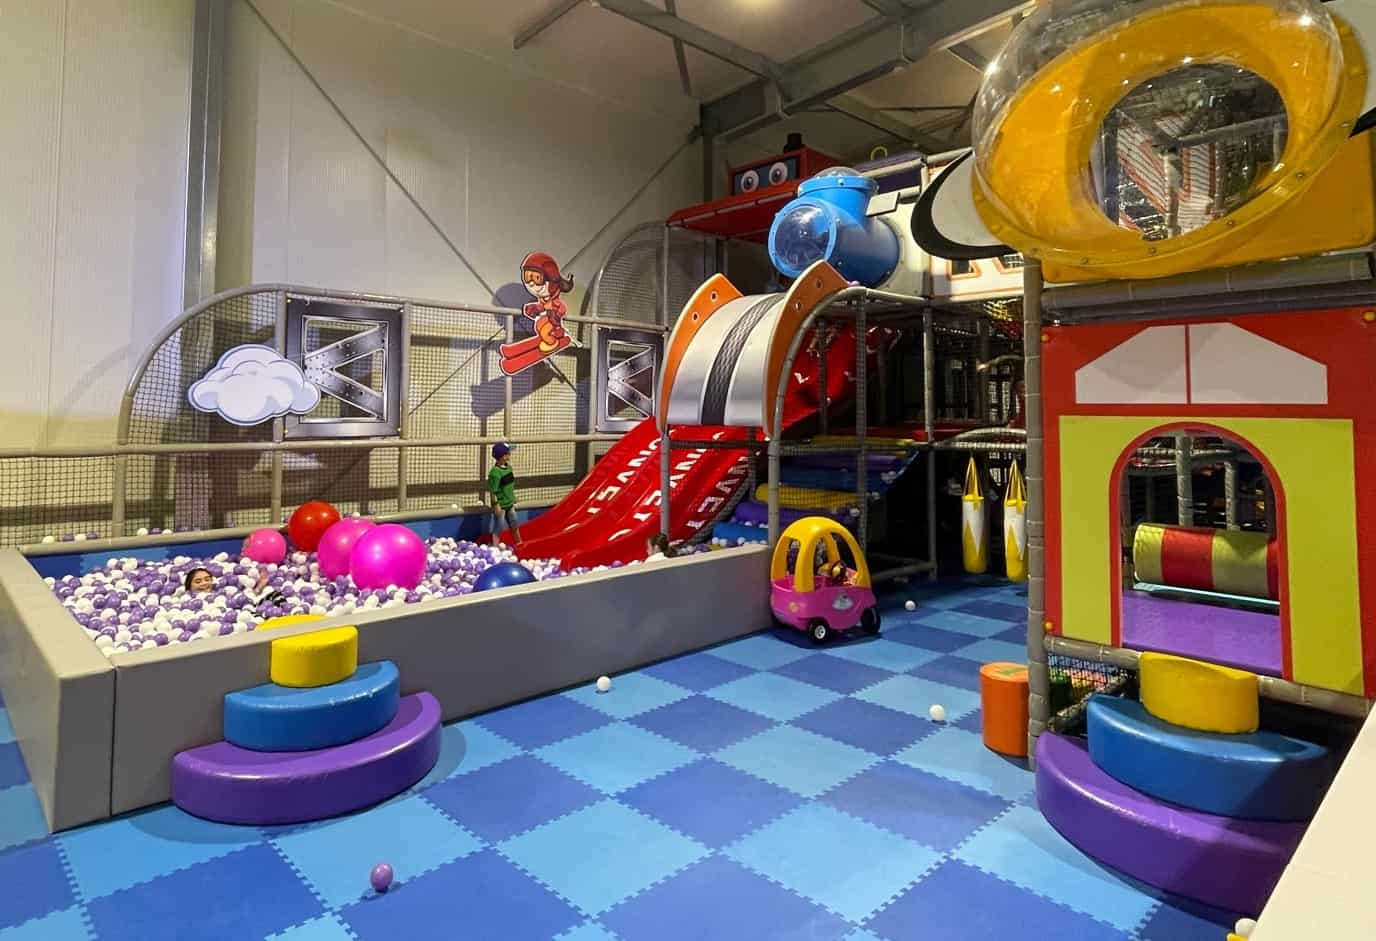 A soft play area for children.